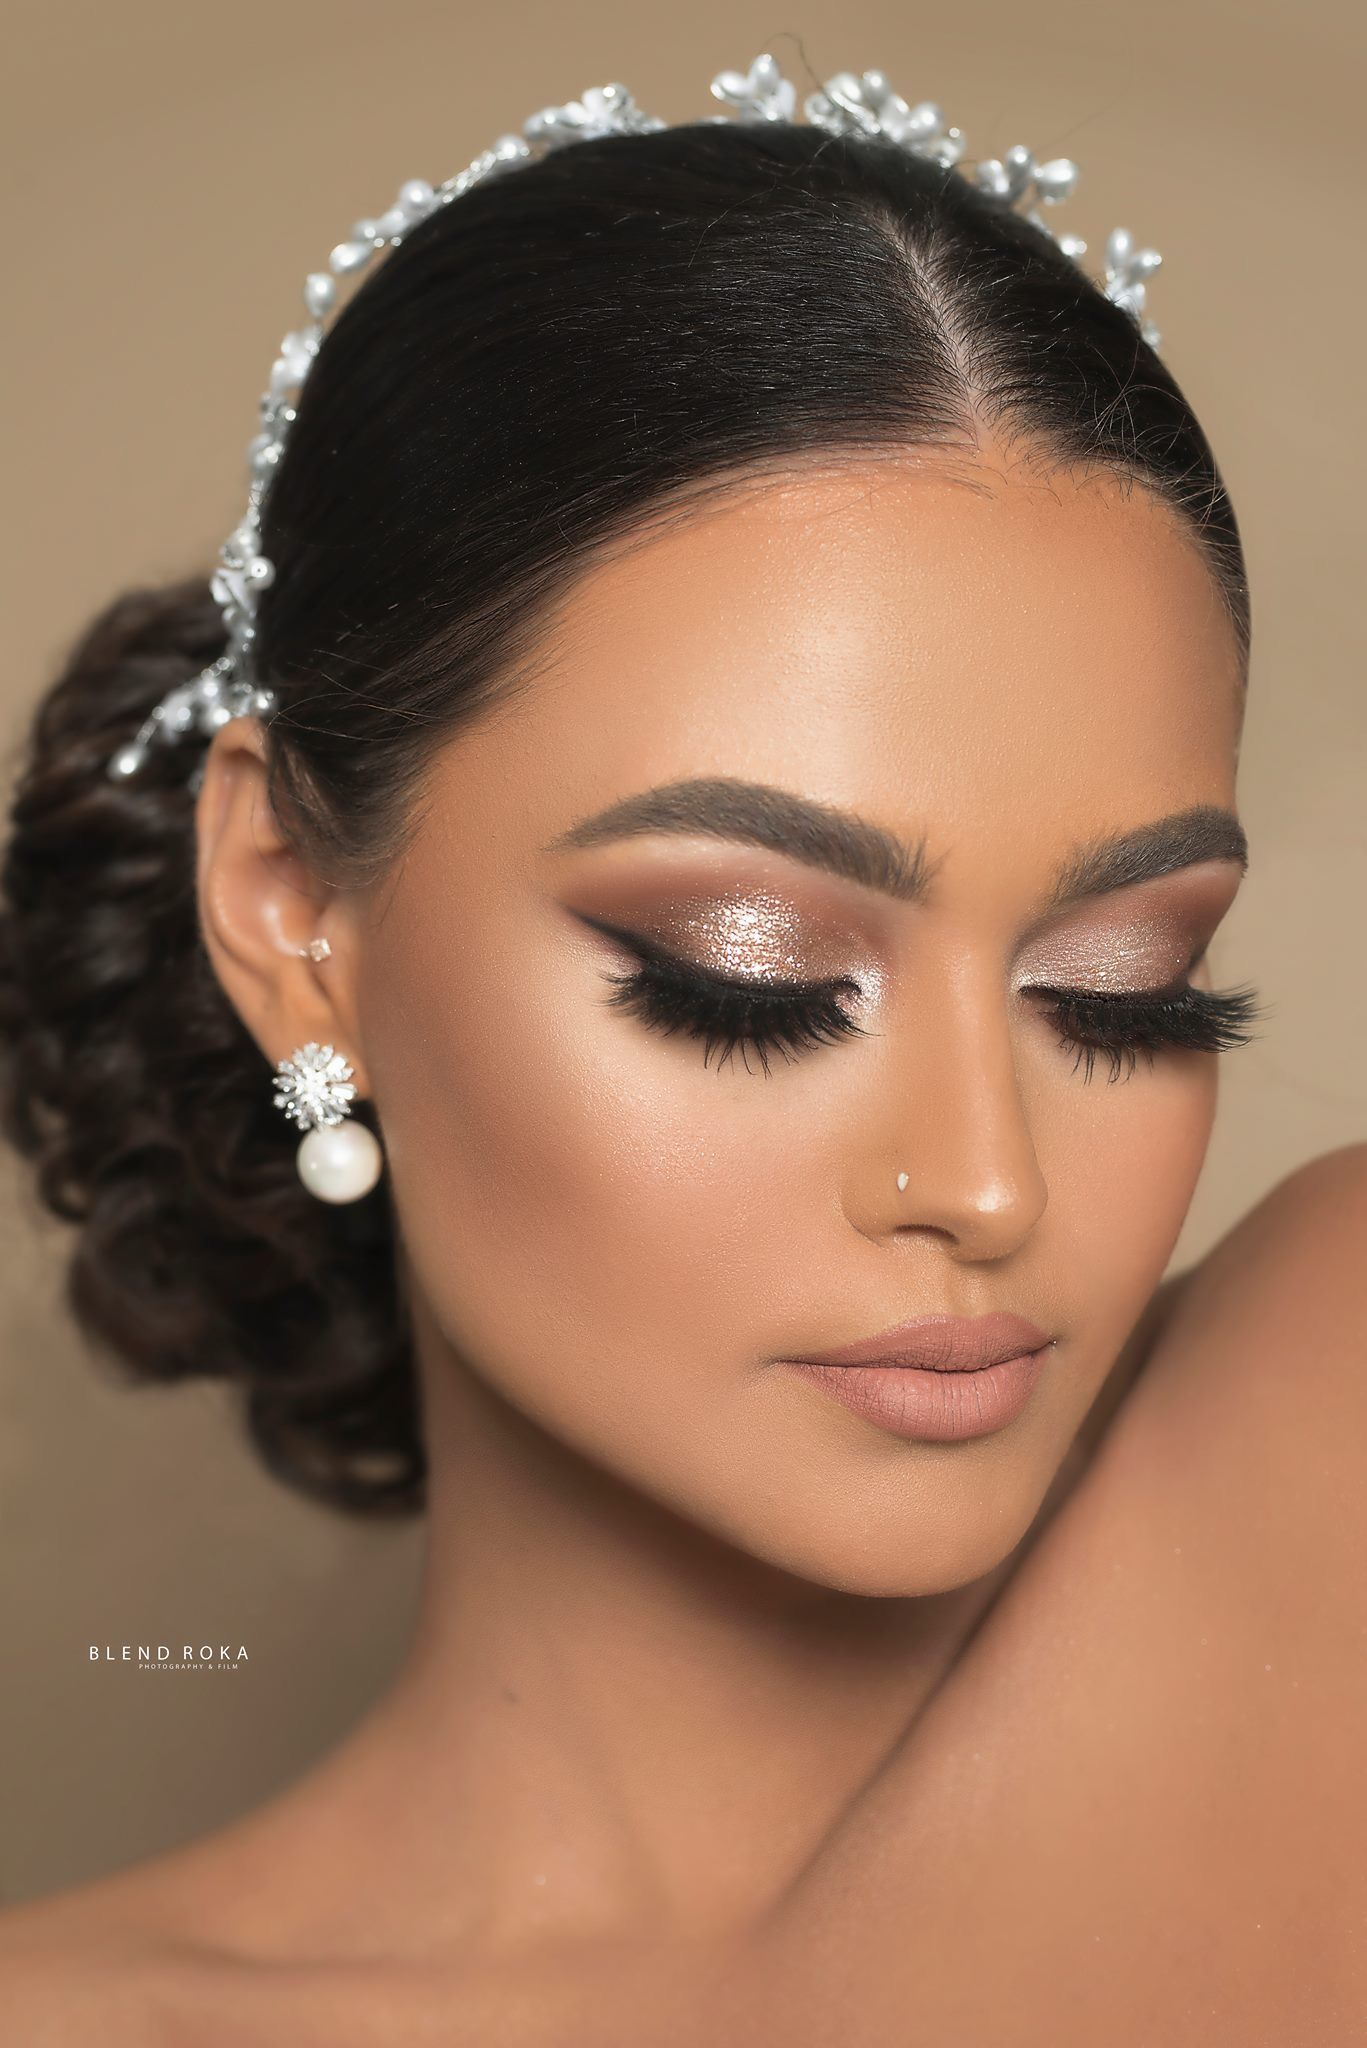 the bride ♡ beautiful | bridal makeup wedding, wedding